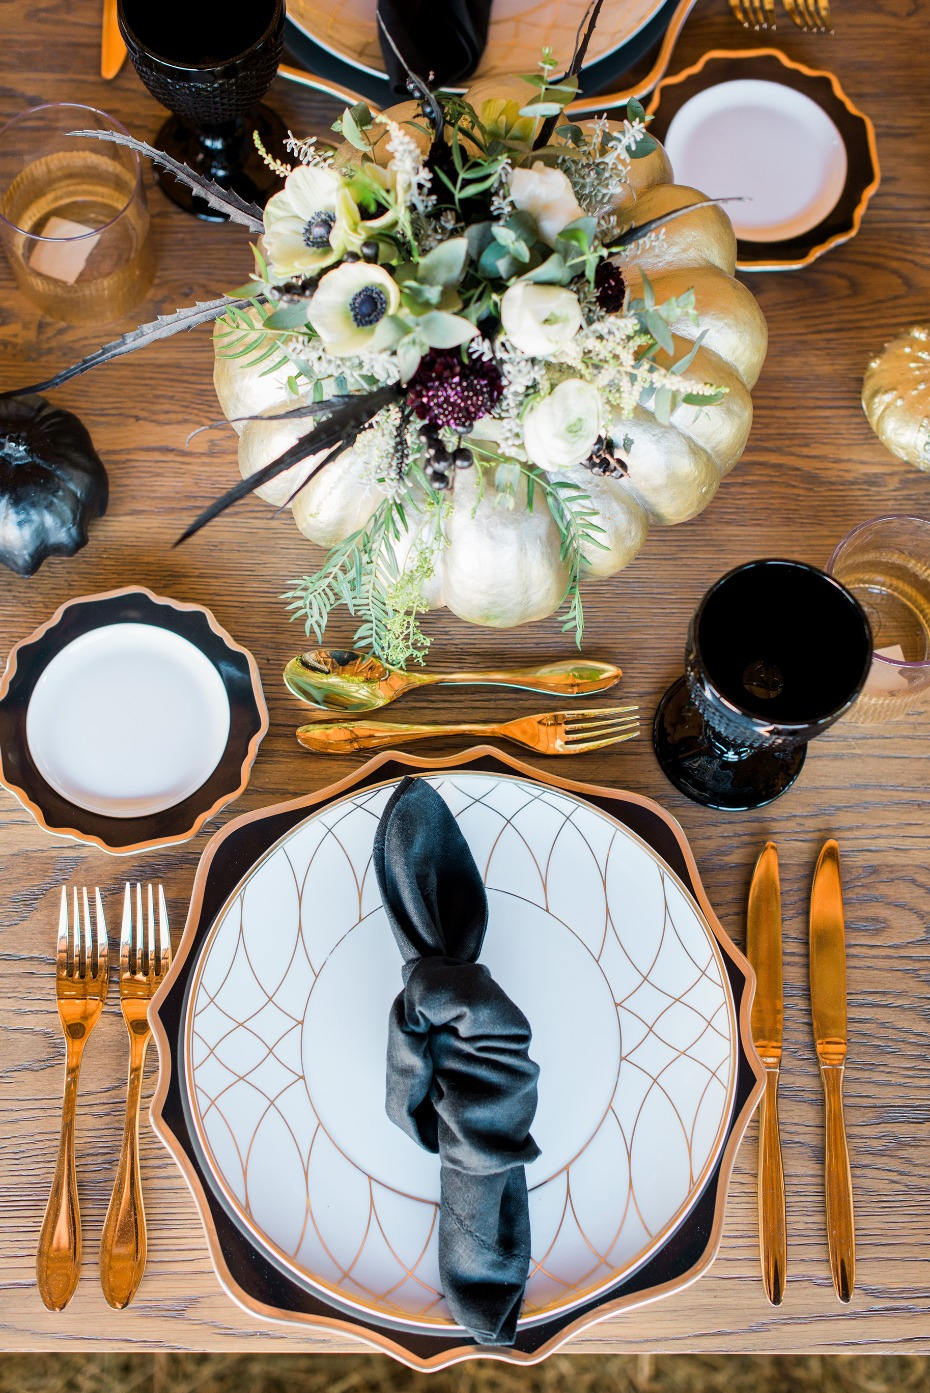 Modern farm table decor in gold, black, and white